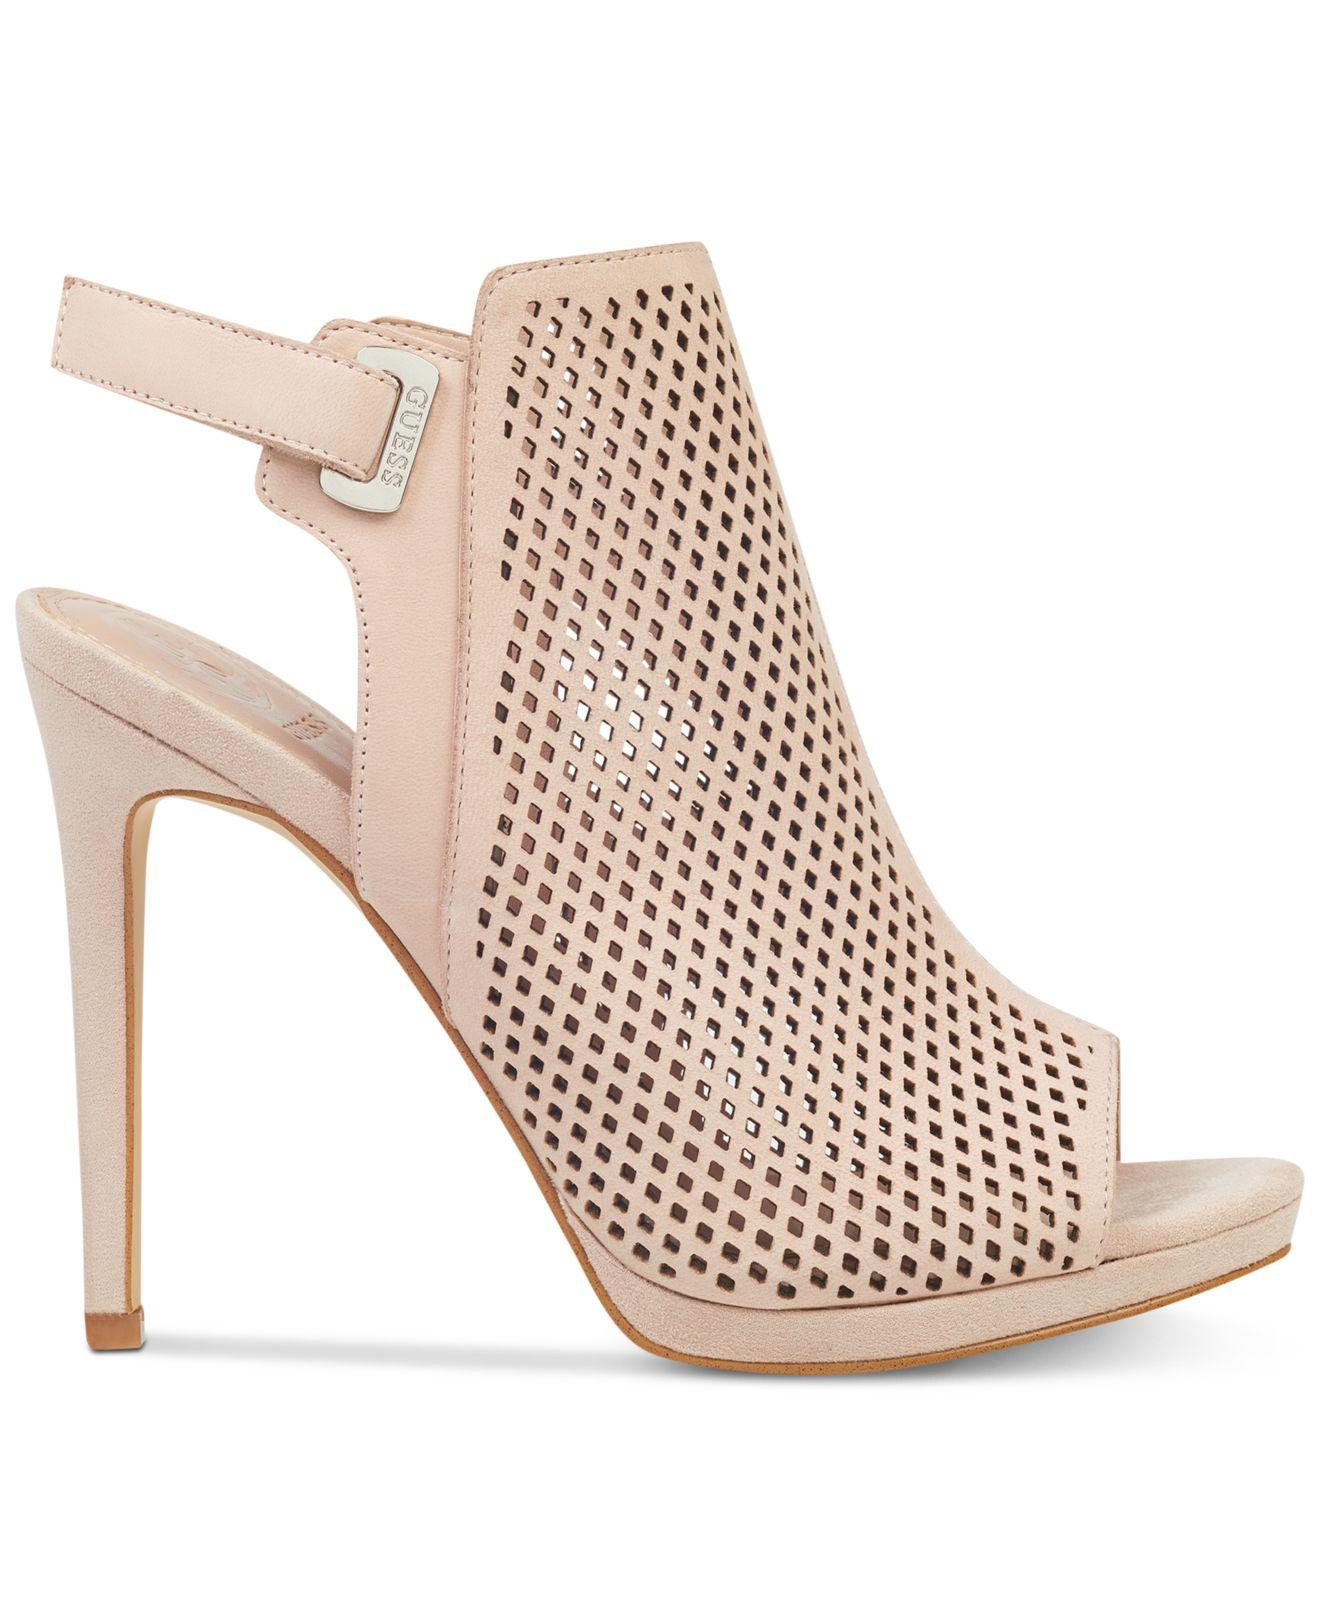 904d4cad9abc Lyst - Guess Aubria Perforated Dress Sandals in Pink